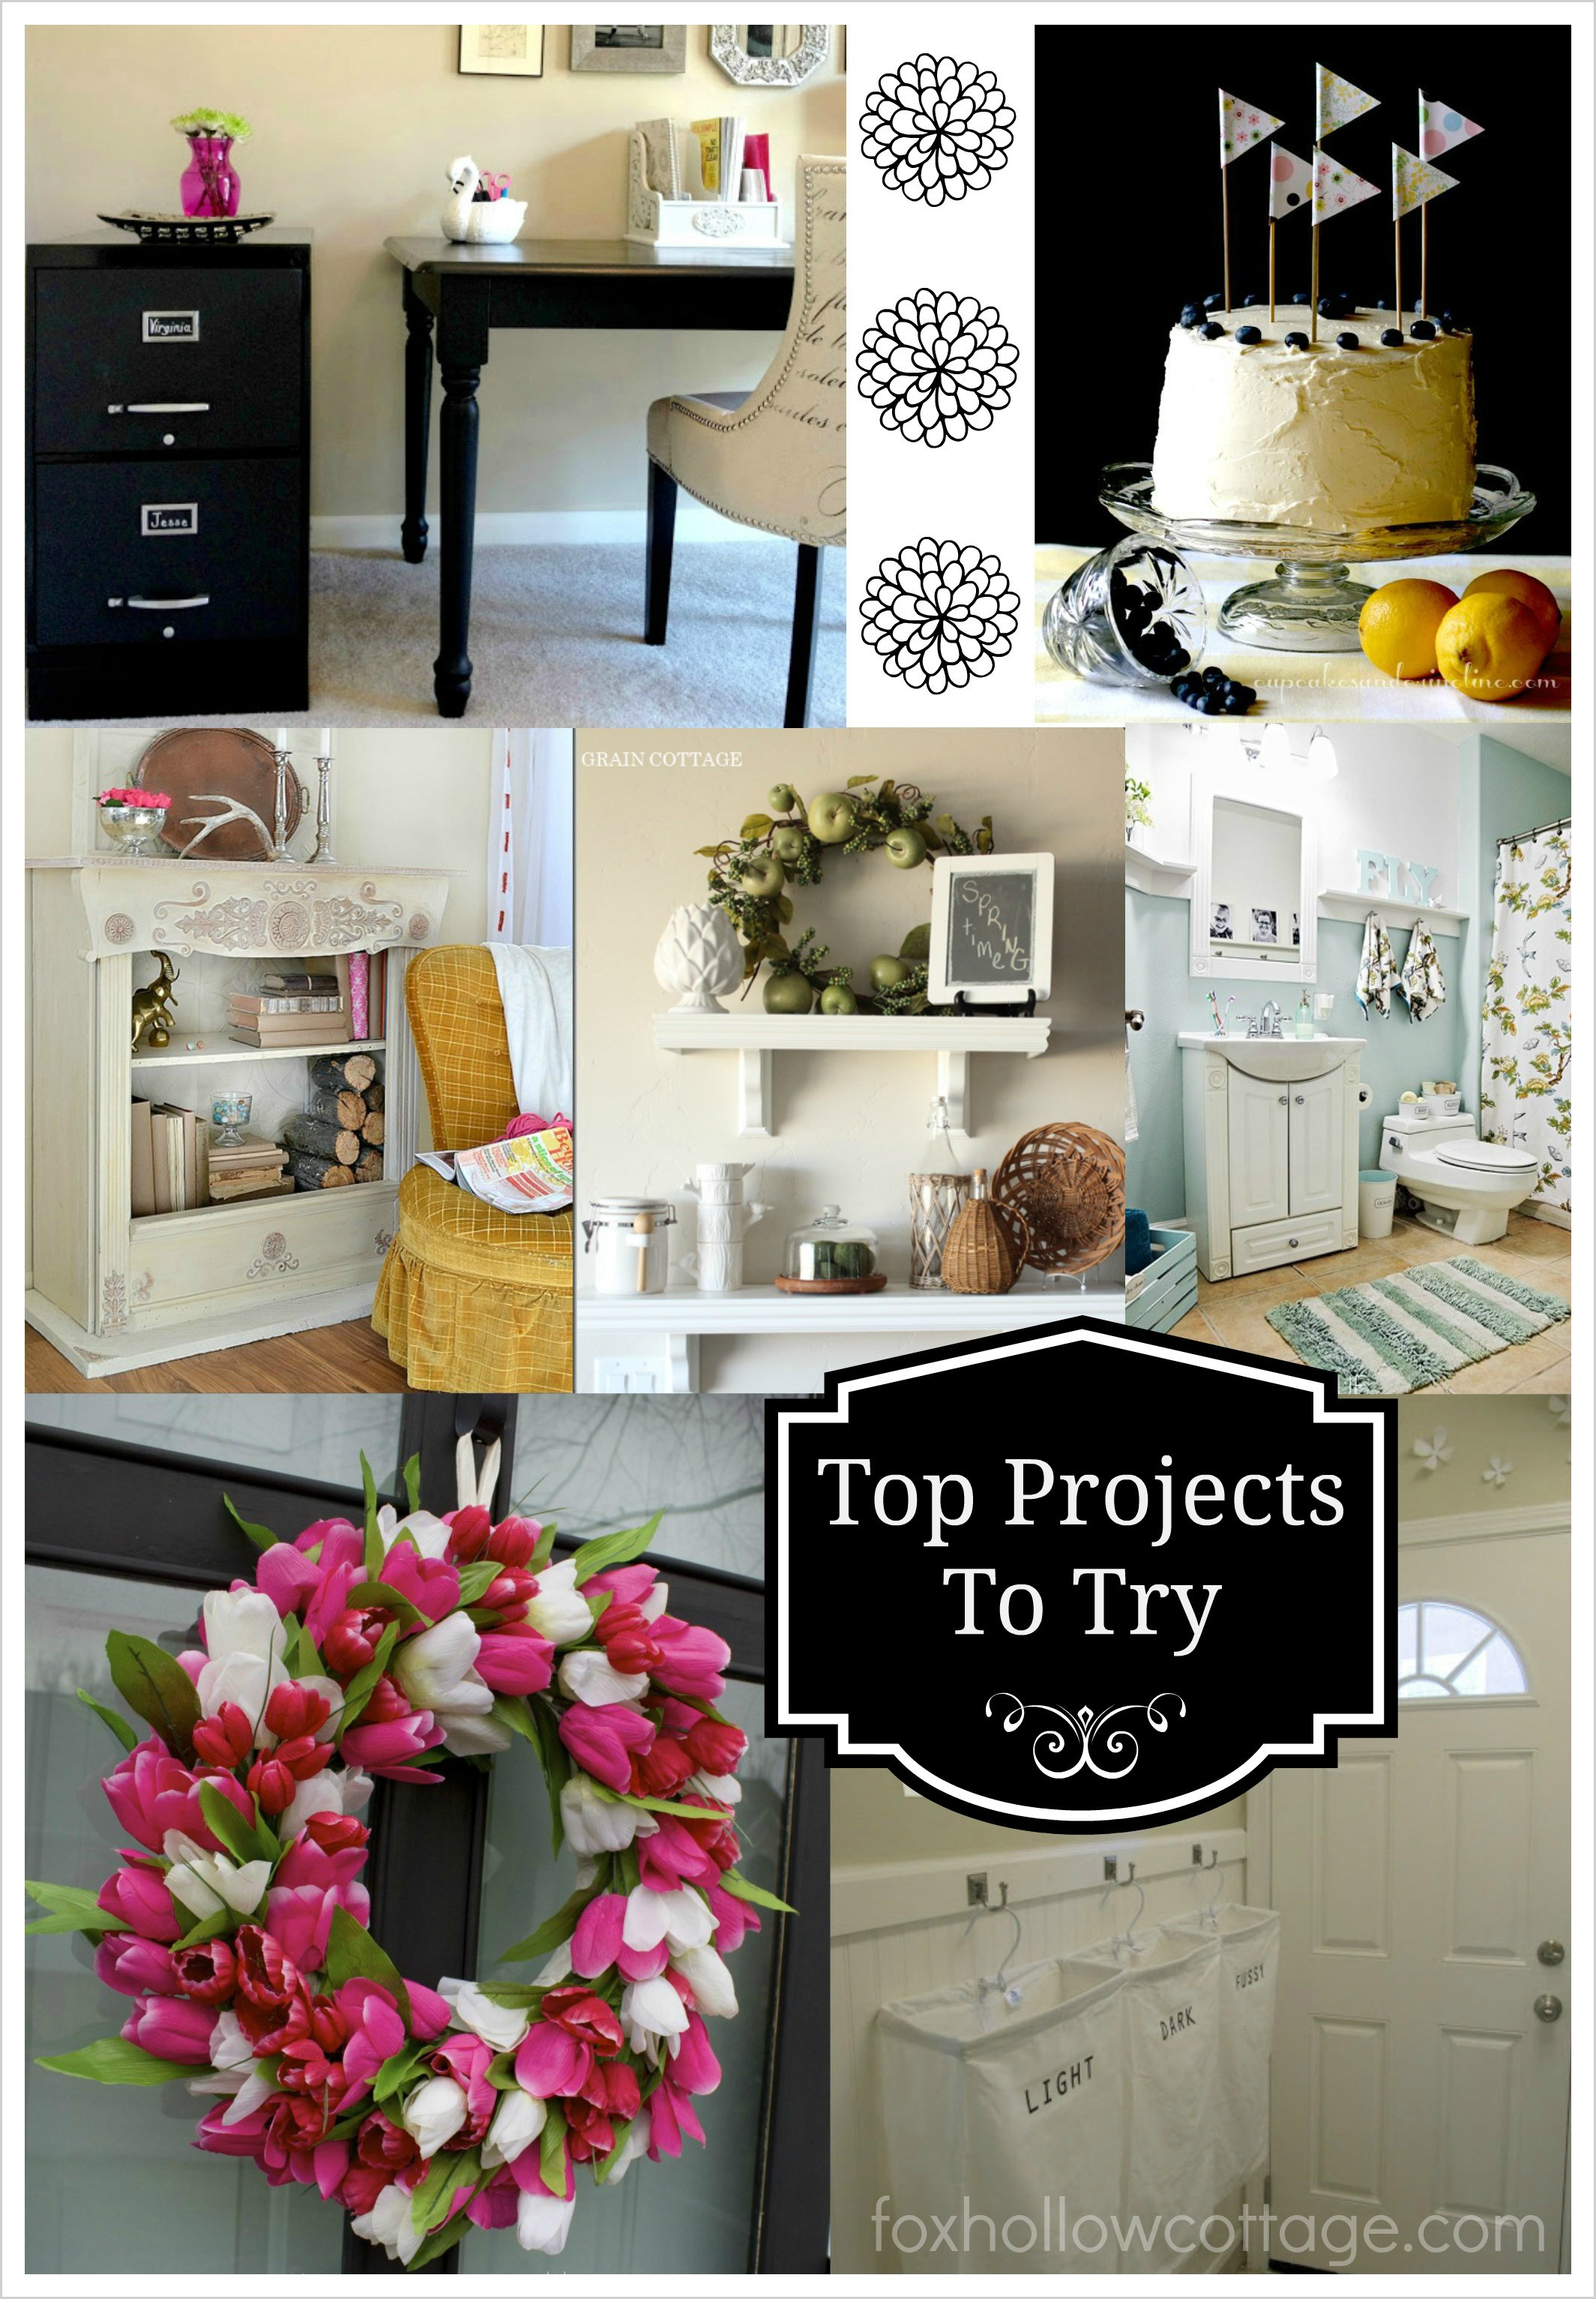 DIY Home Decor Pinterest  Power Pinterest Link Party and Friday Fav Features